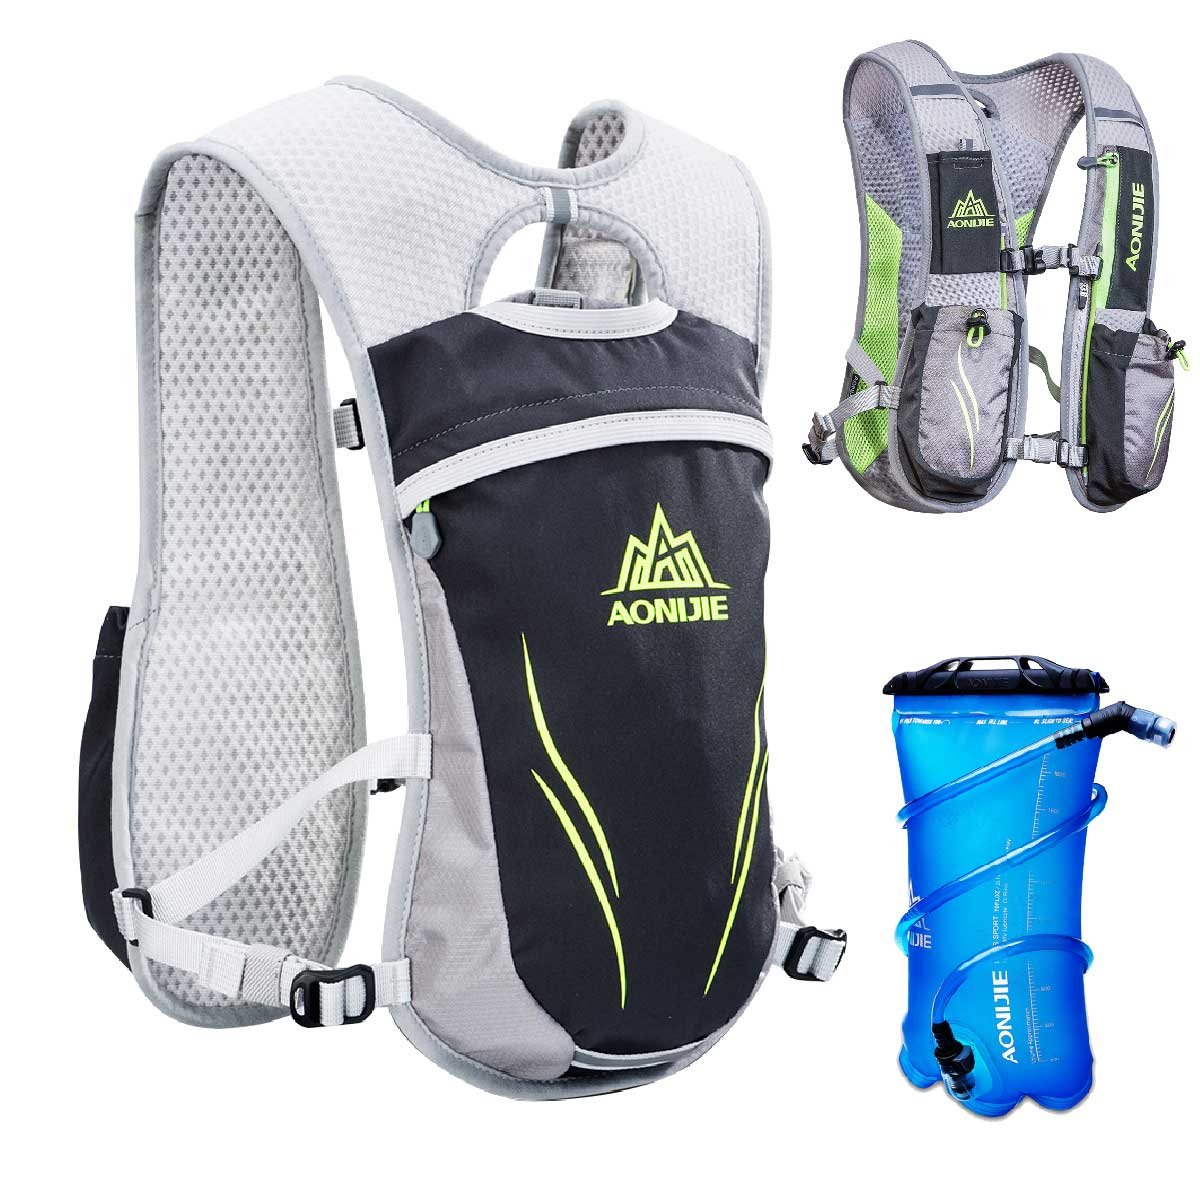 TRIWONDER Hydration Pack Backpack 5.5L Outdoors Mochilas Trail Marathoner Running Race Hydration Vest product image